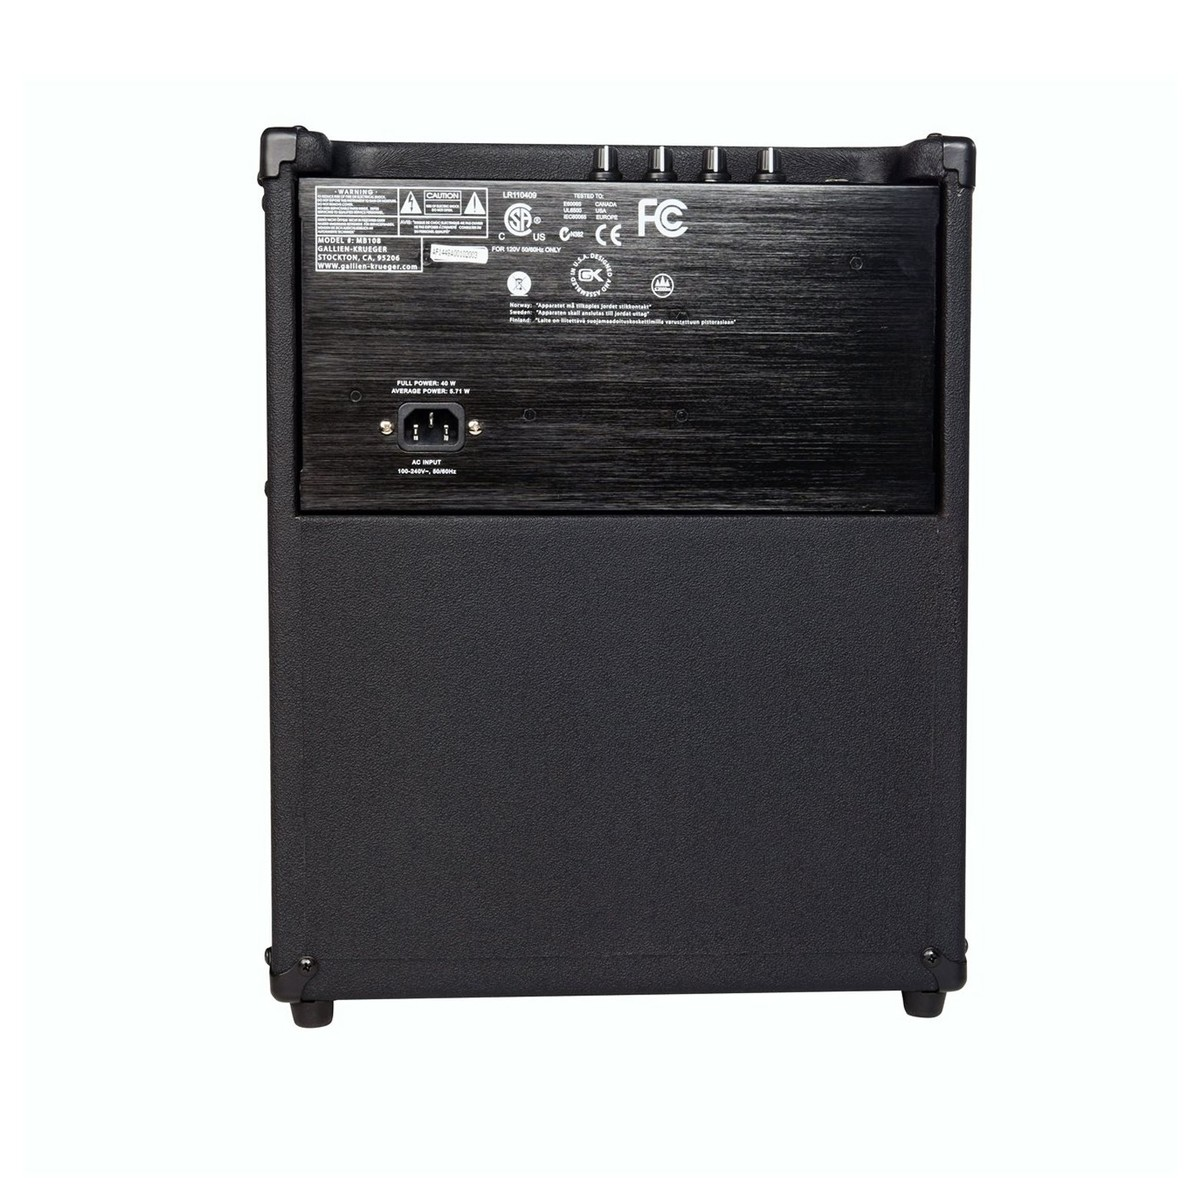 gallien krueger mb108 lightweight bass combo at gear4music. Black Bedroom Furniture Sets. Home Design Ideas